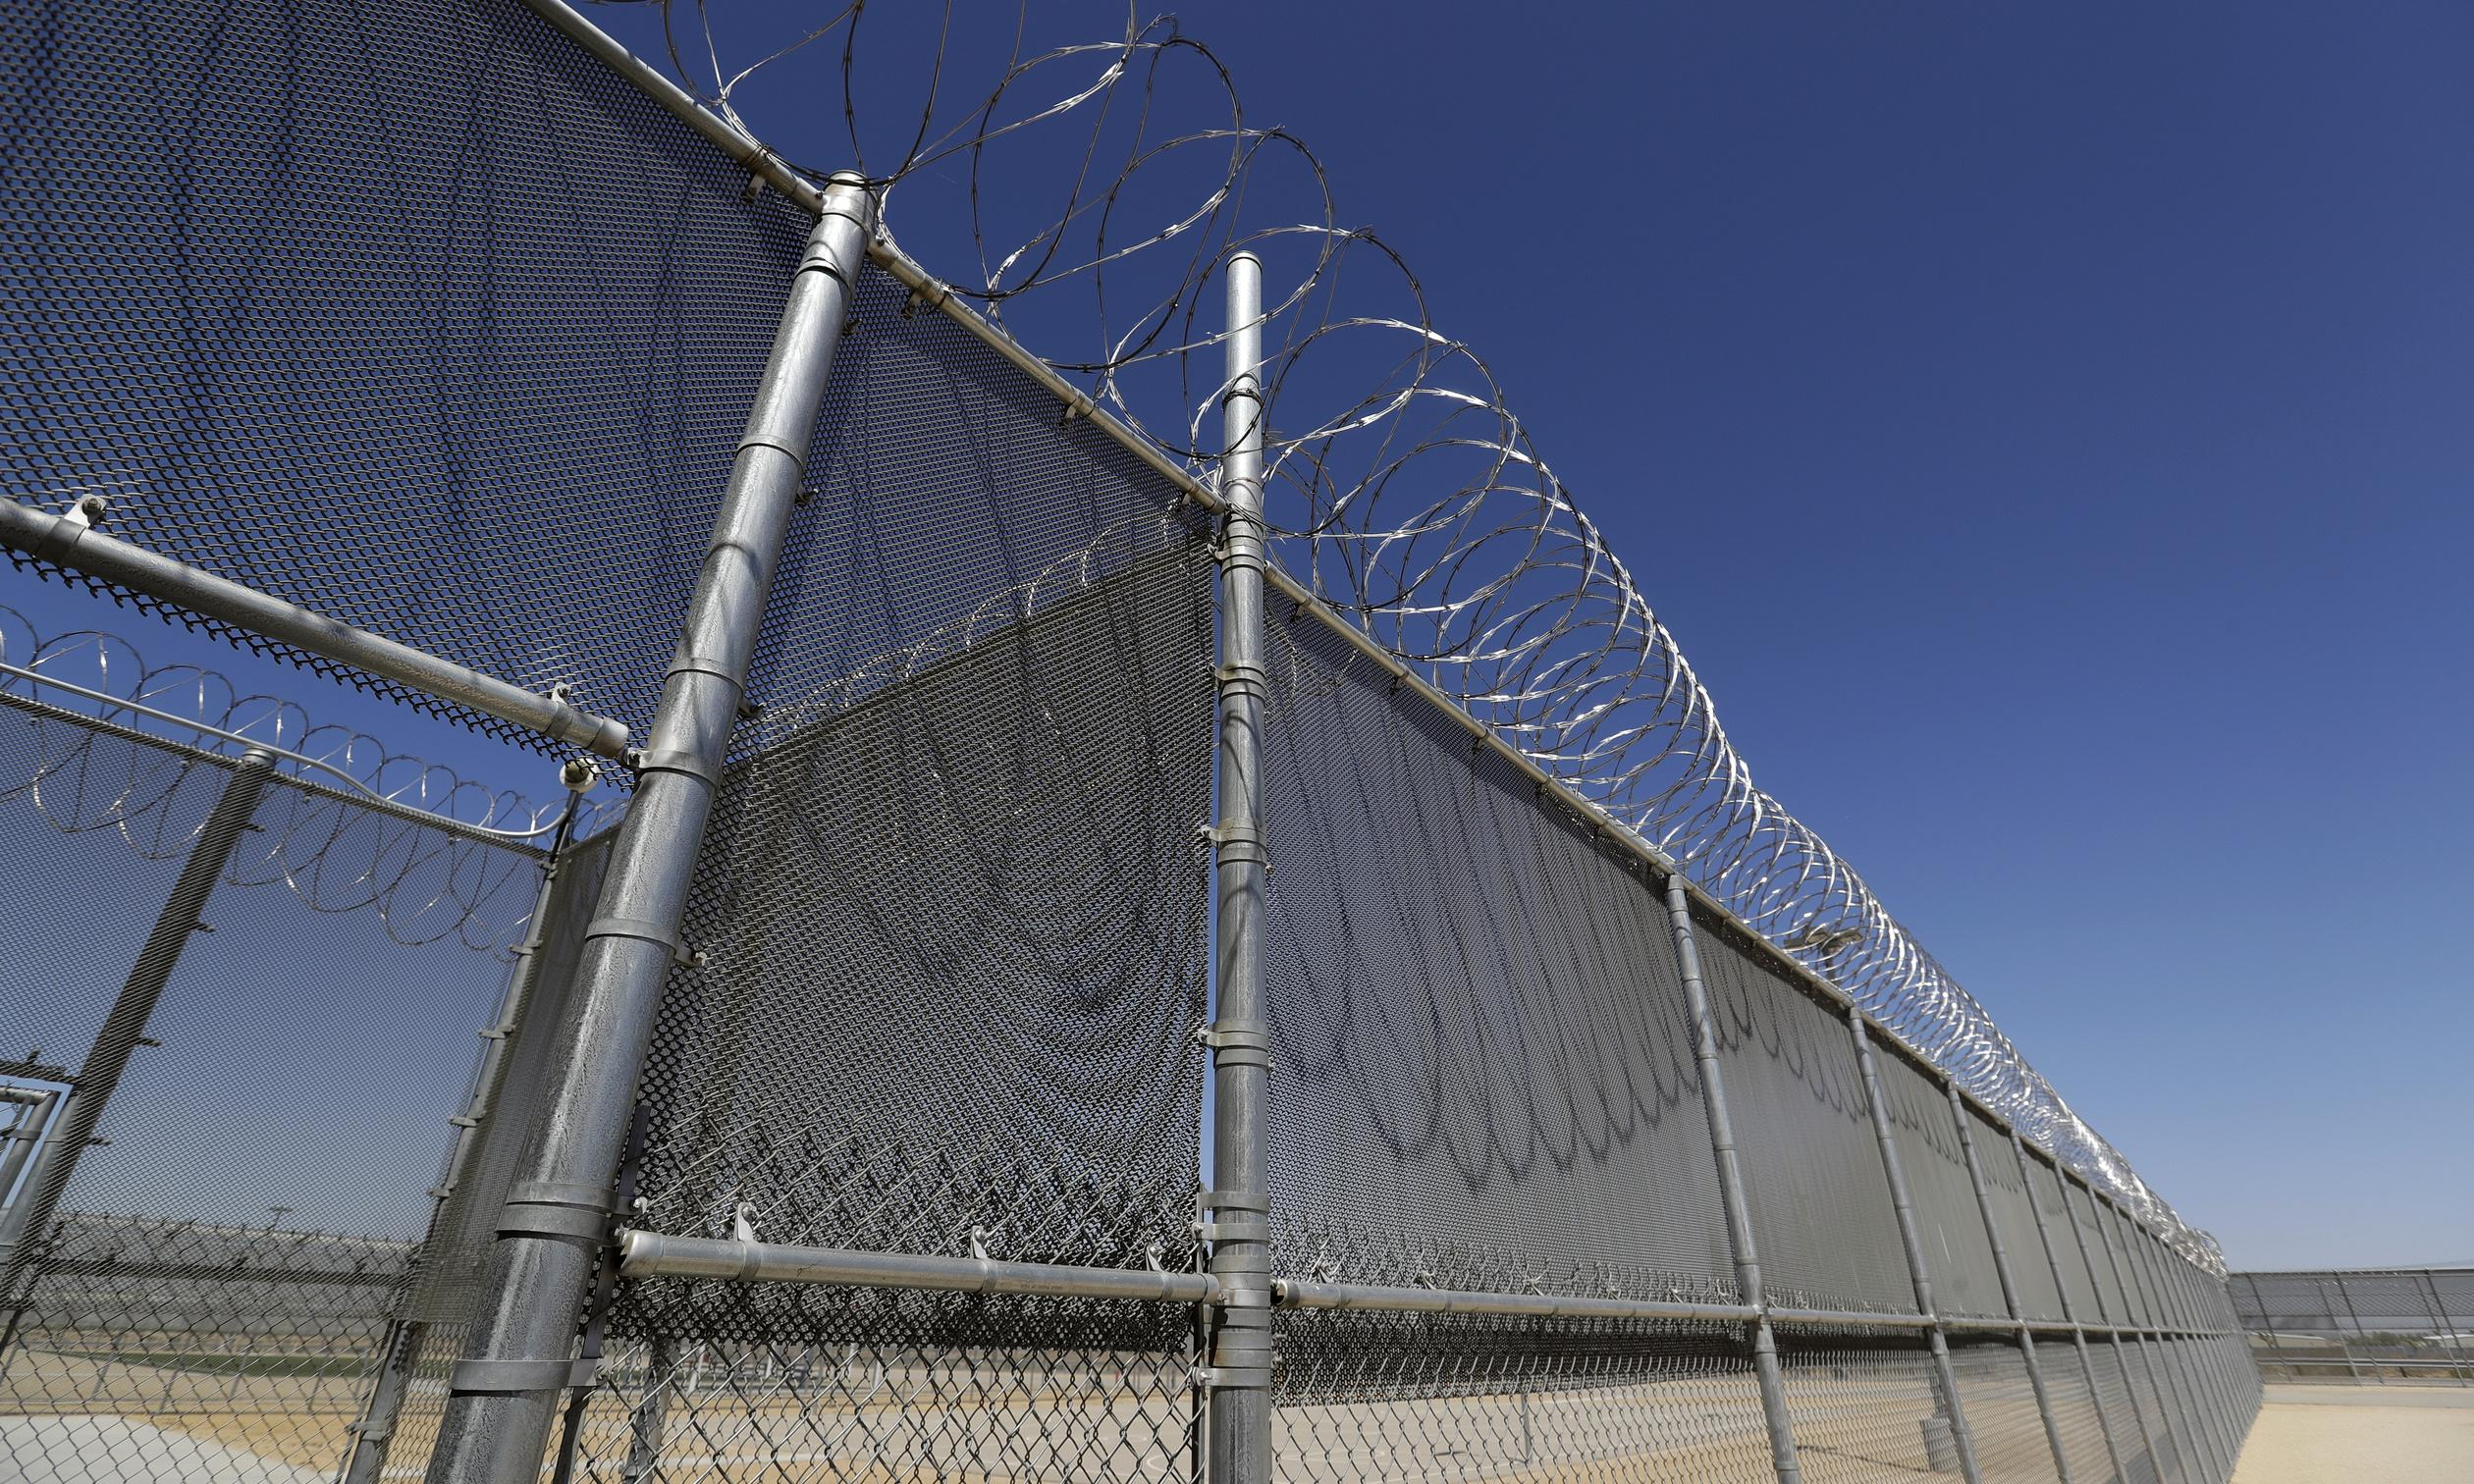 California governor signs ban on private prisons, setting up fight with Trump